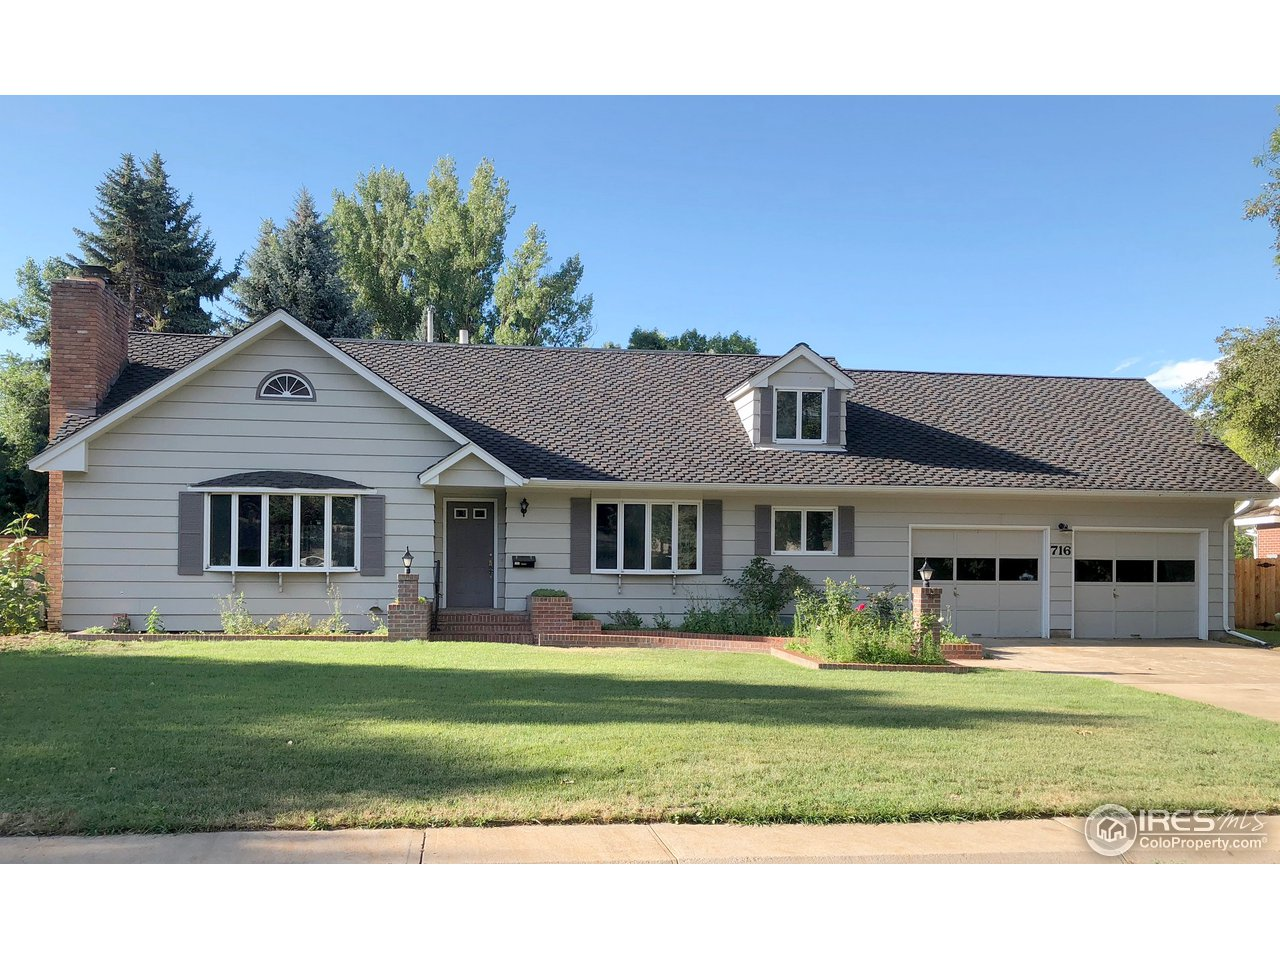 716 Garfield St, Fort Collins CO 80524